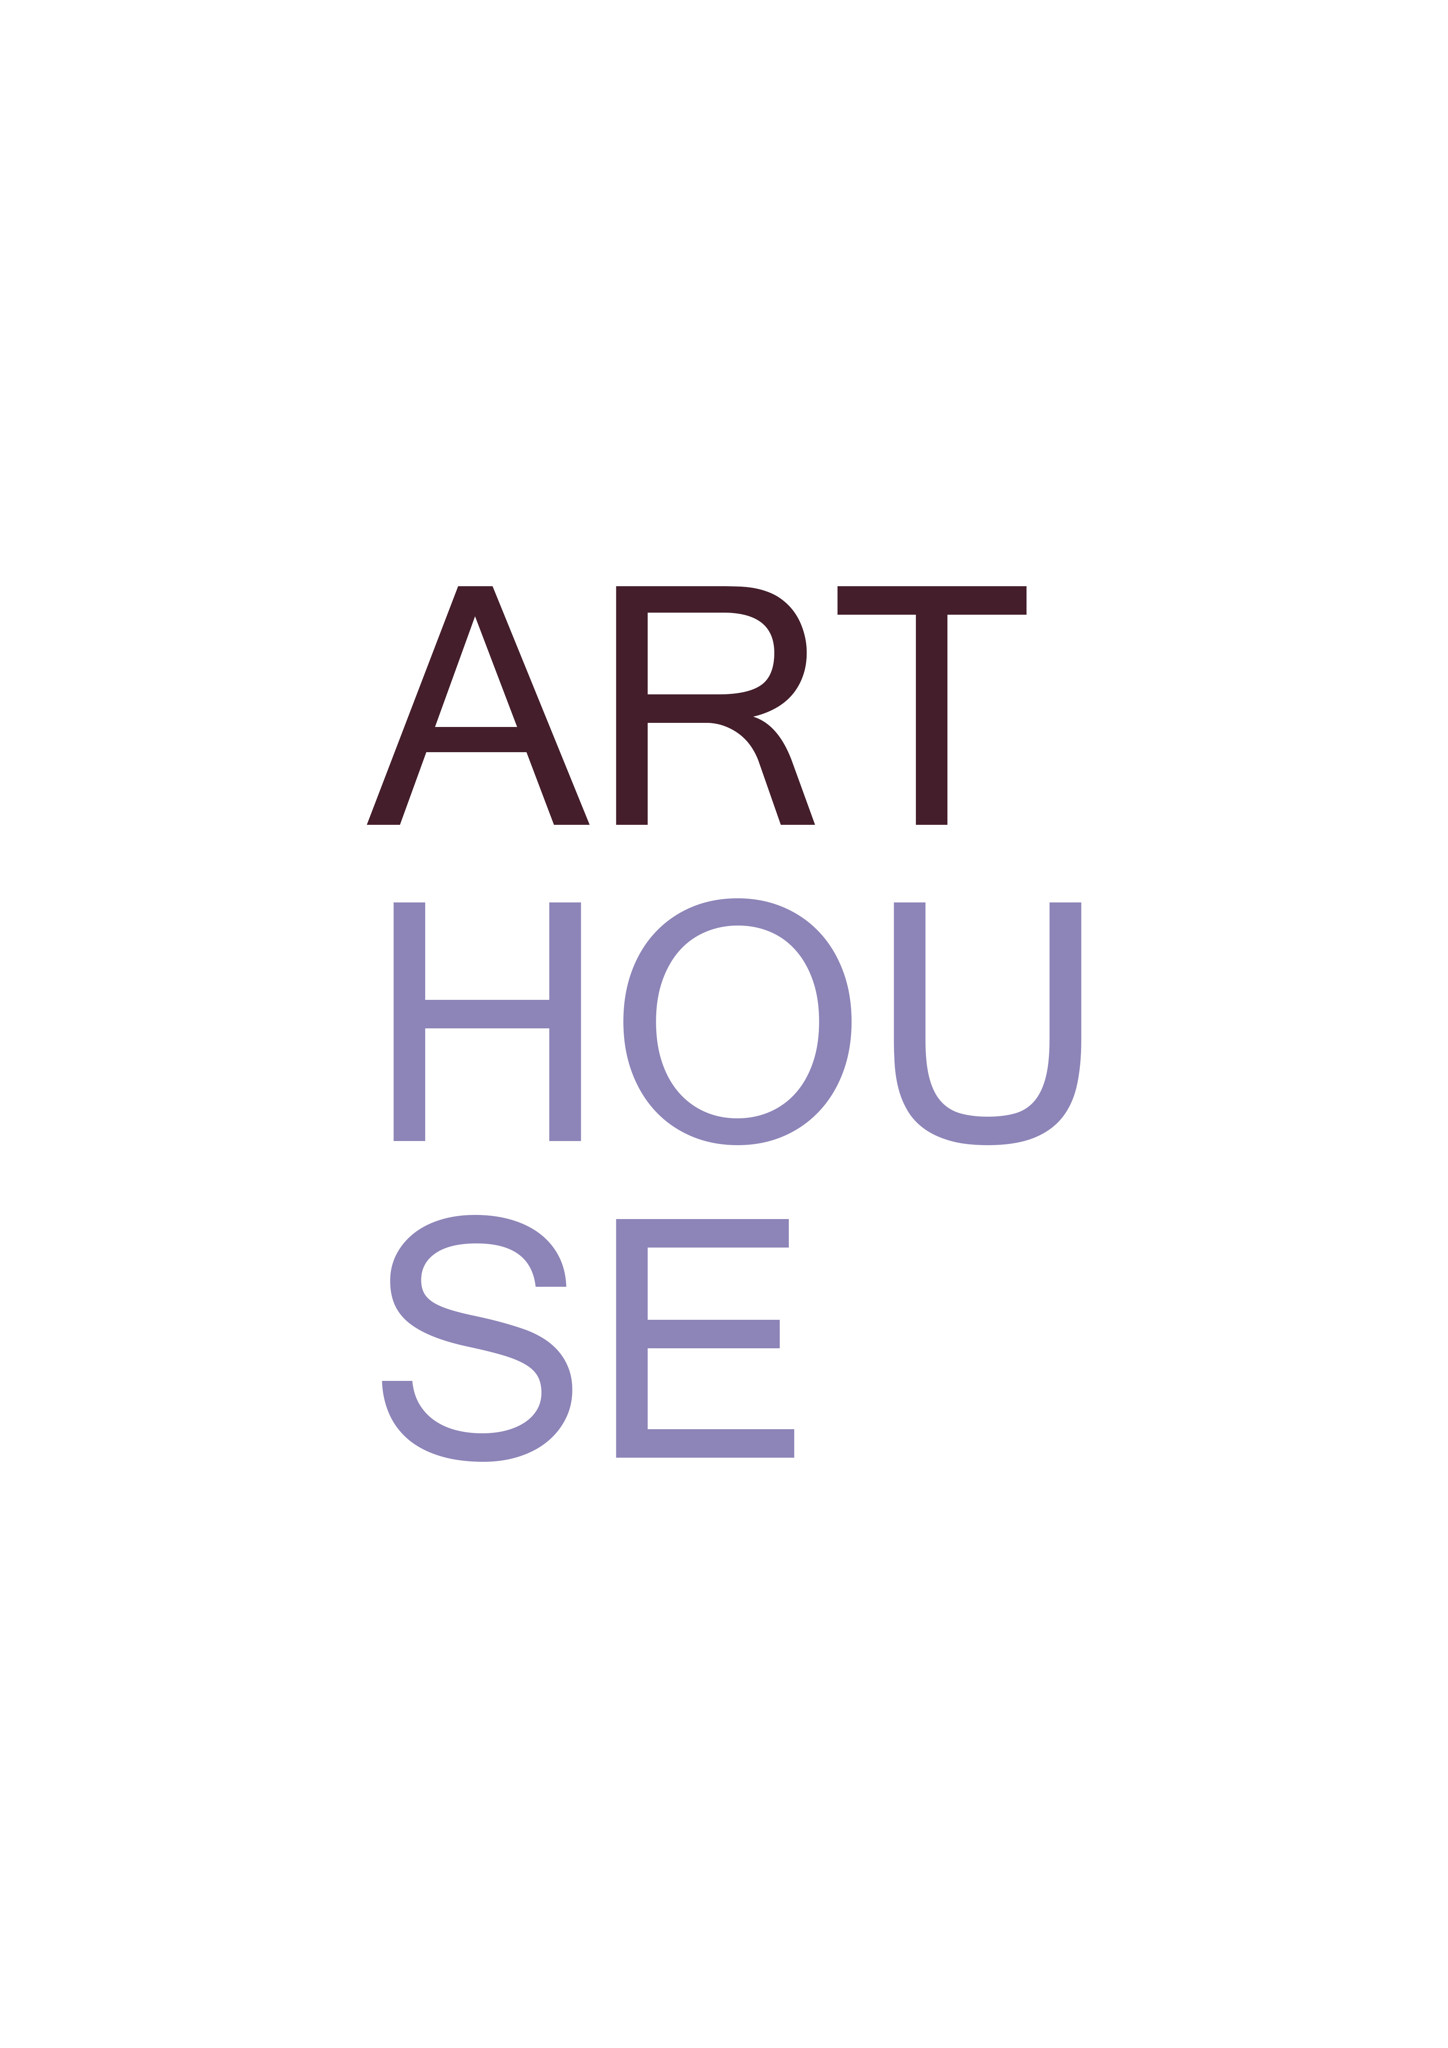 DJ Art House